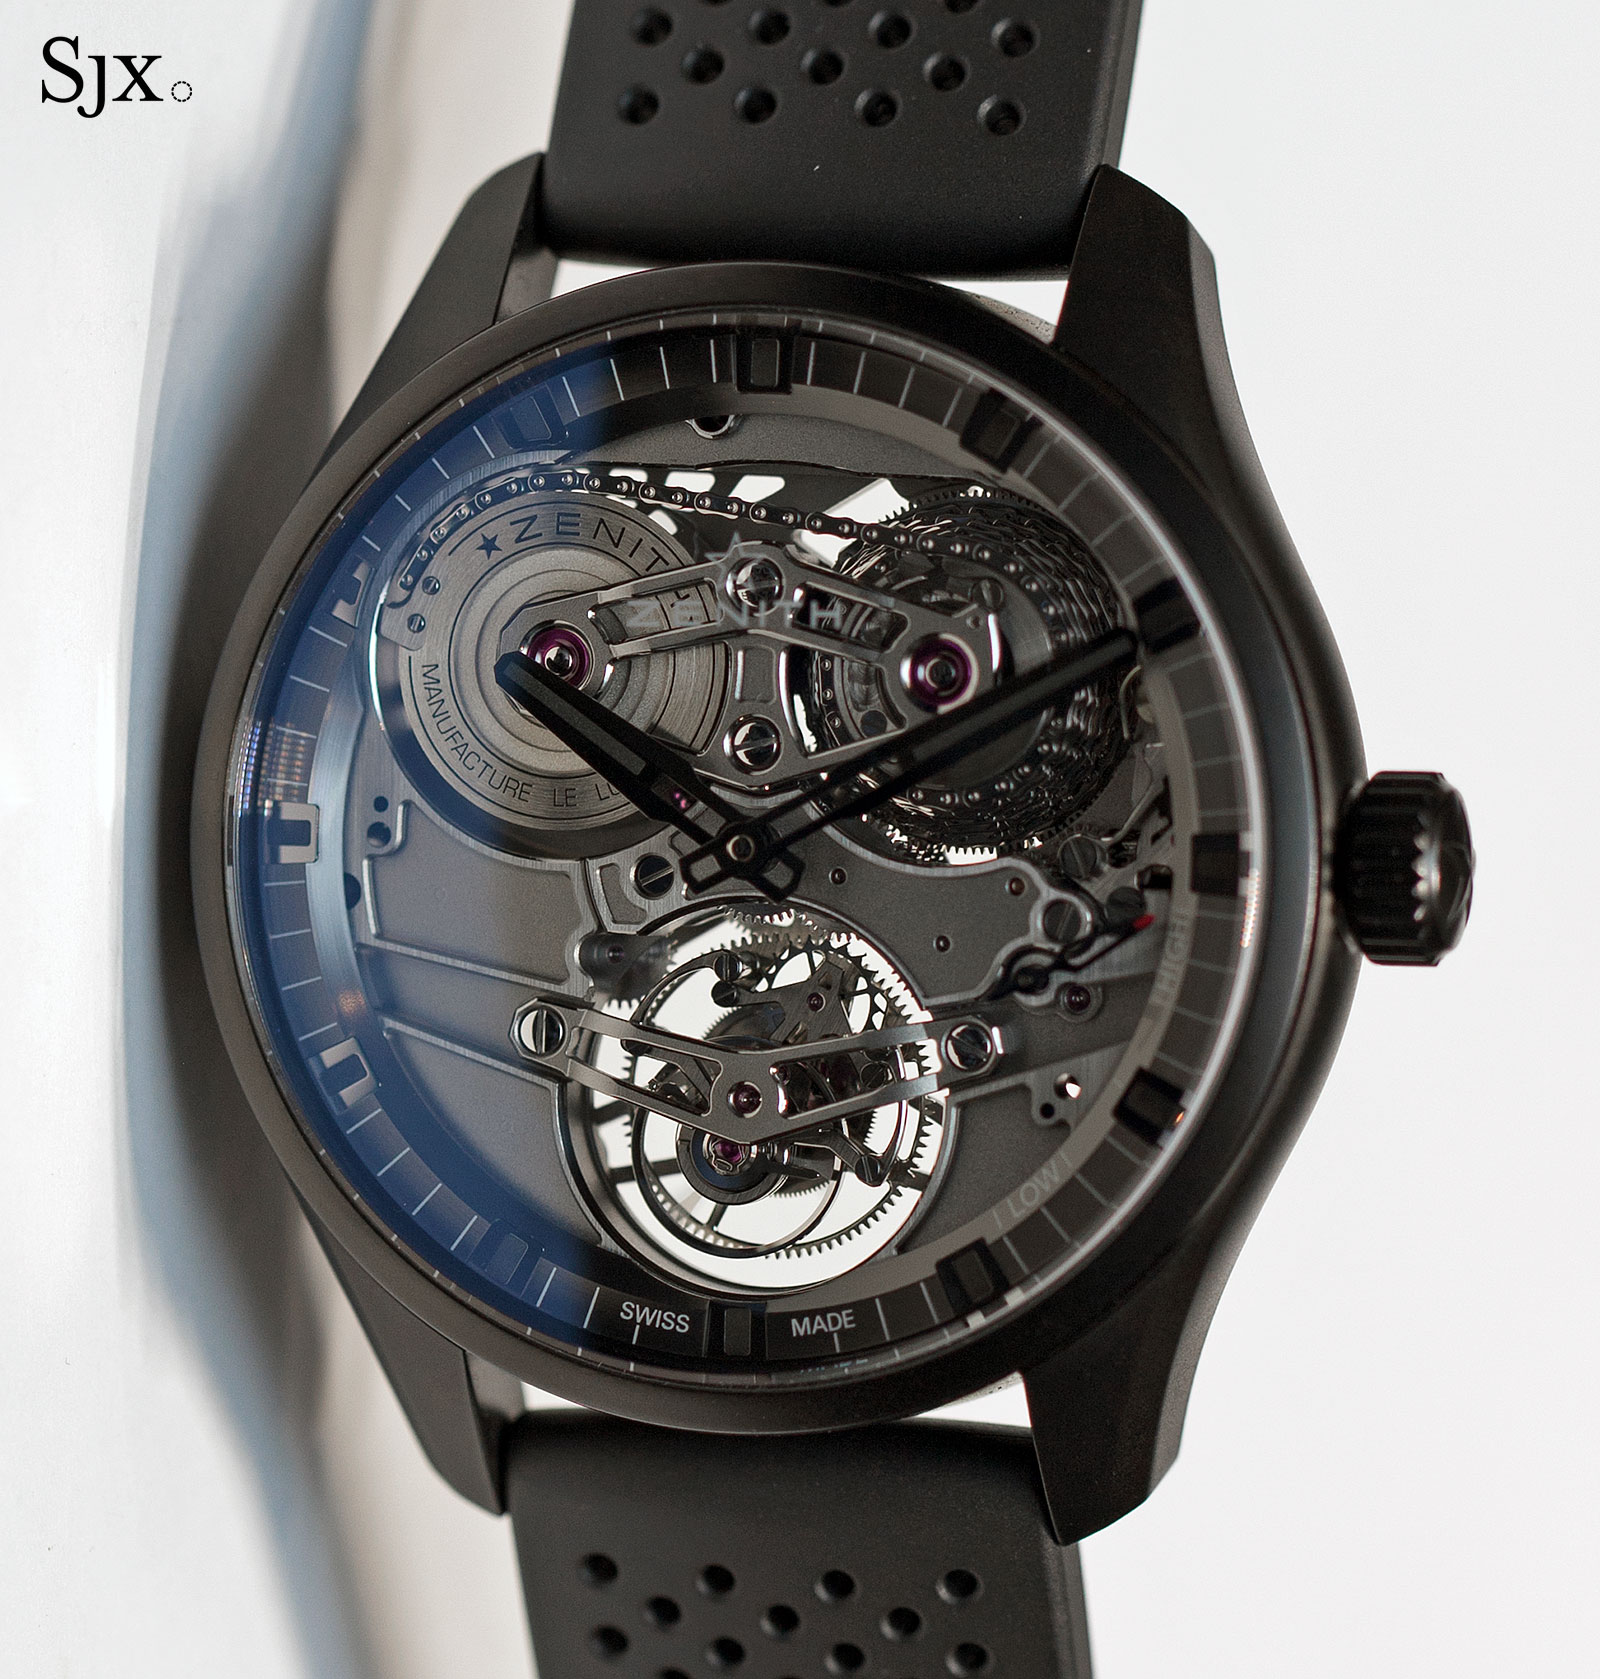 Zenith Academy Georges Favre-Jacot Tourbillon ceramic 1